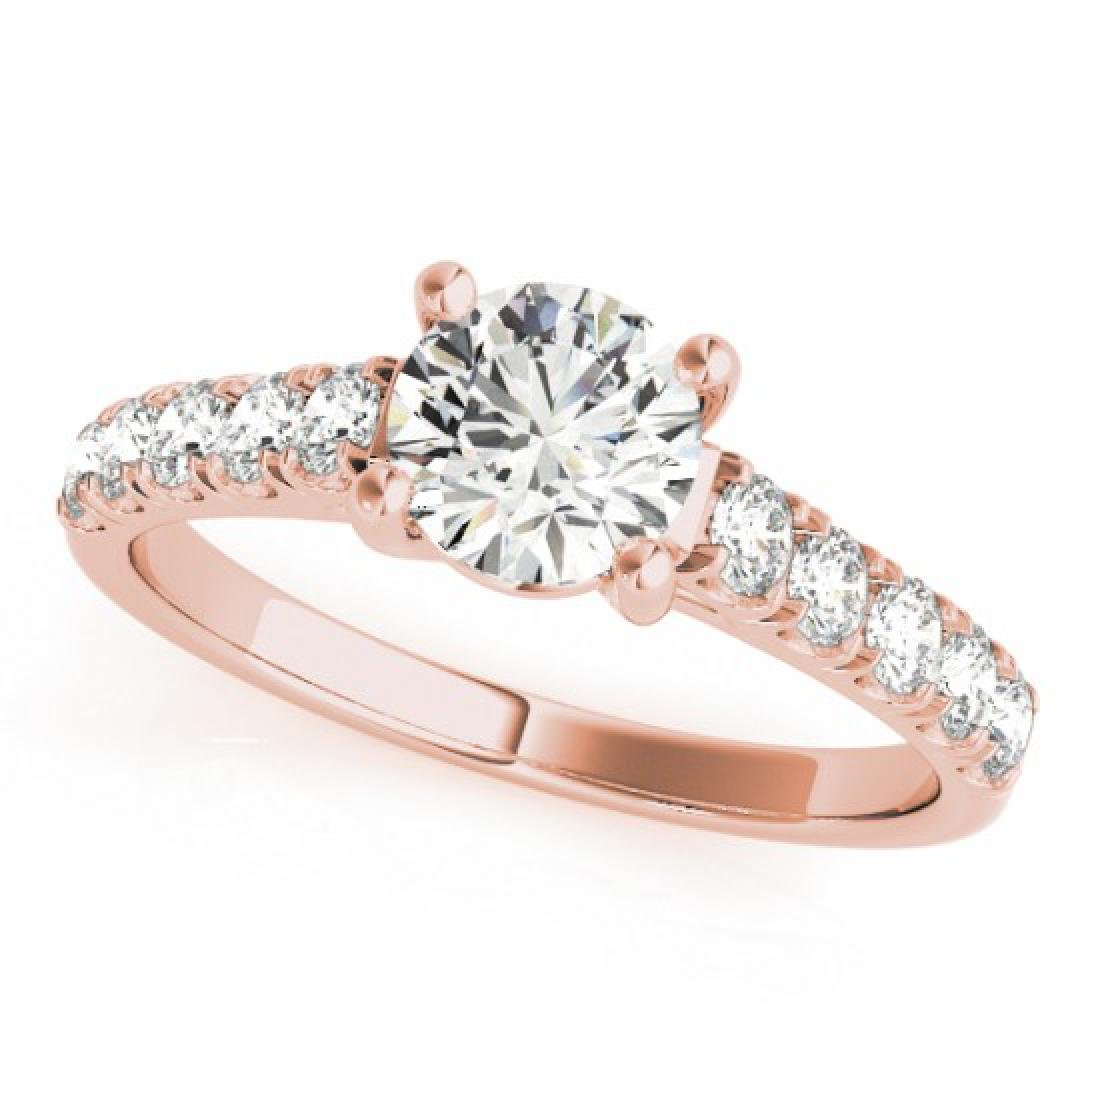 1.55 CTW Certified VS/SI Diamond Solitaire Ring 14K